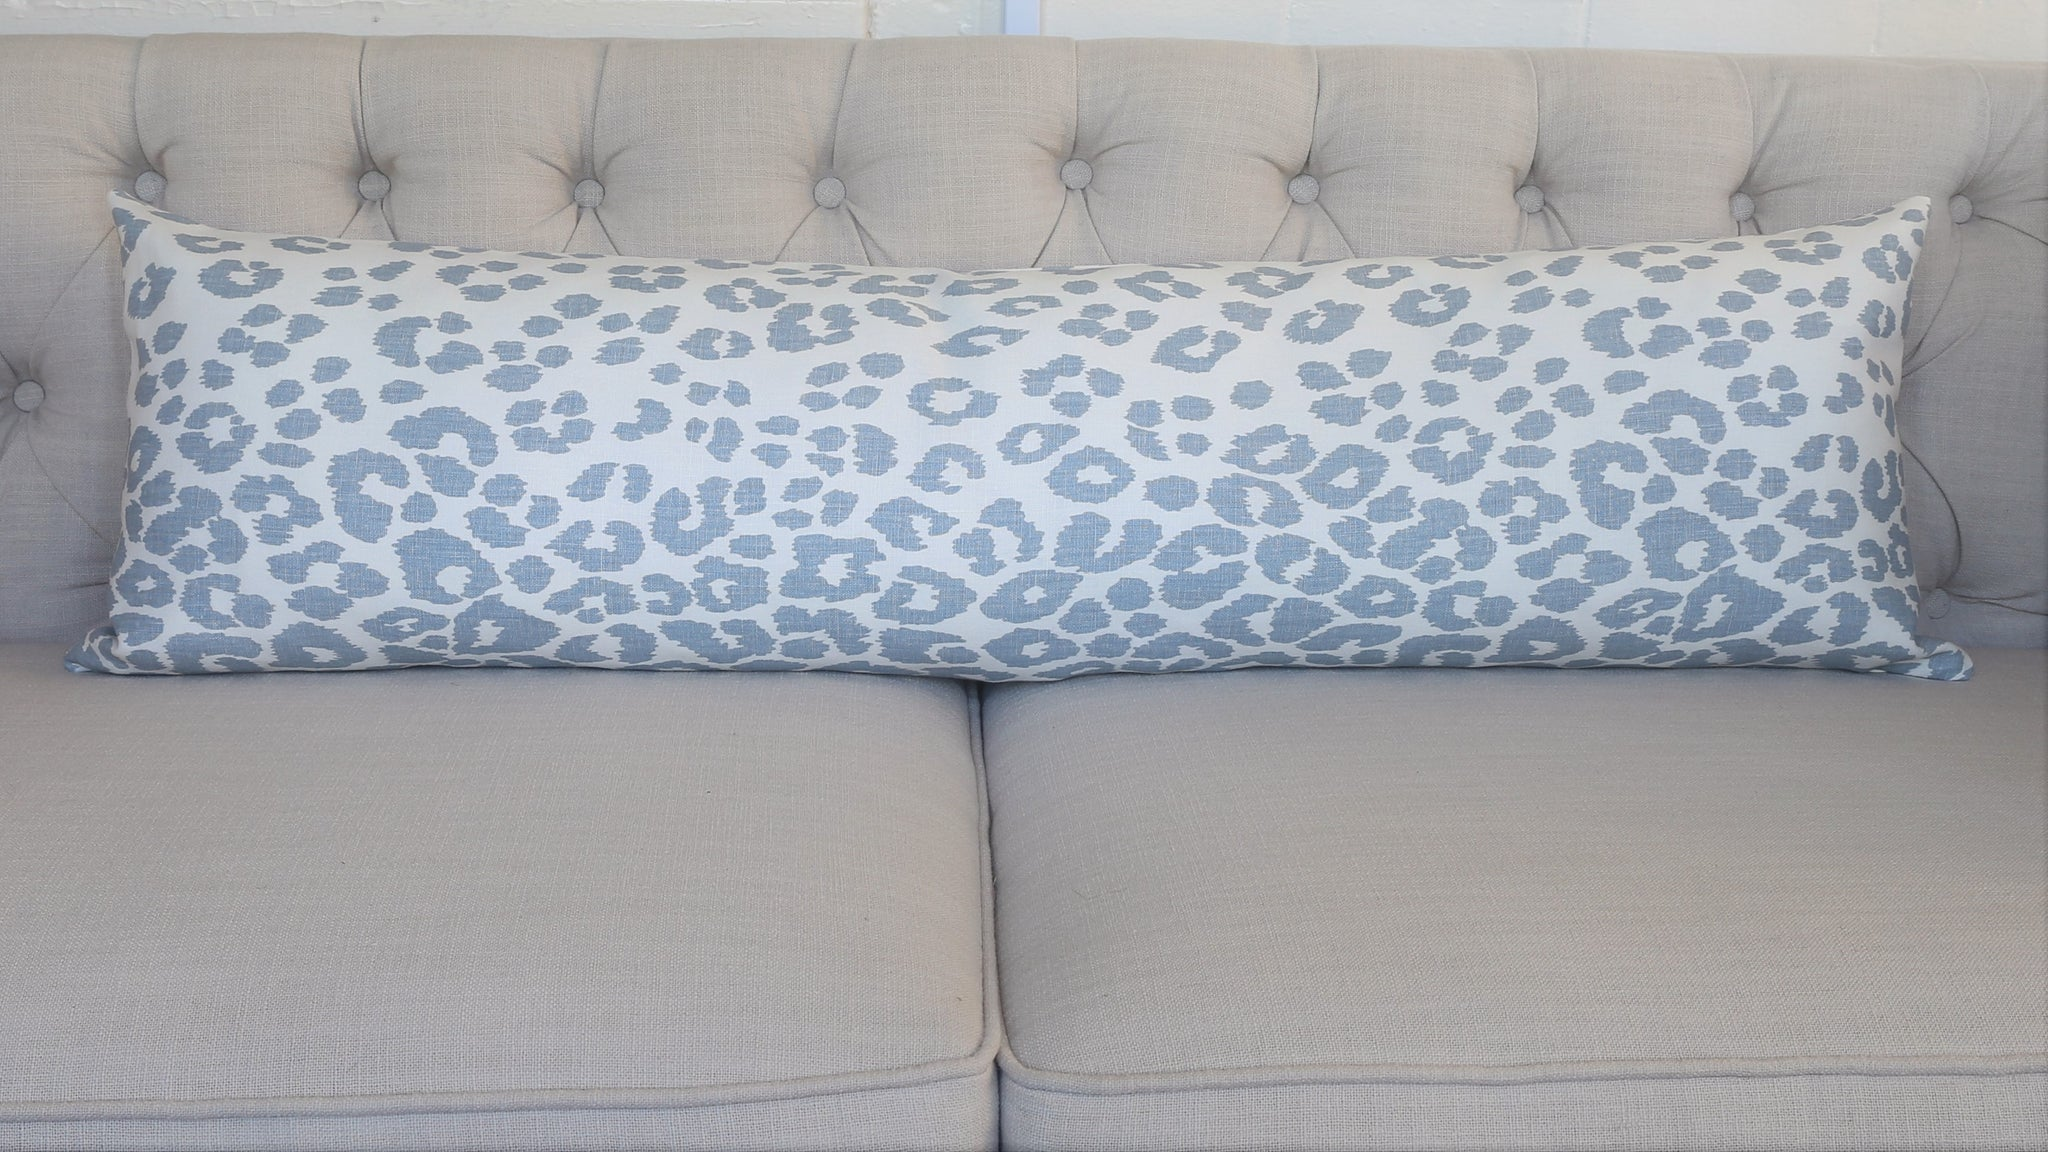 READY TO SHIP - Iconic Leopard Sky 13x44